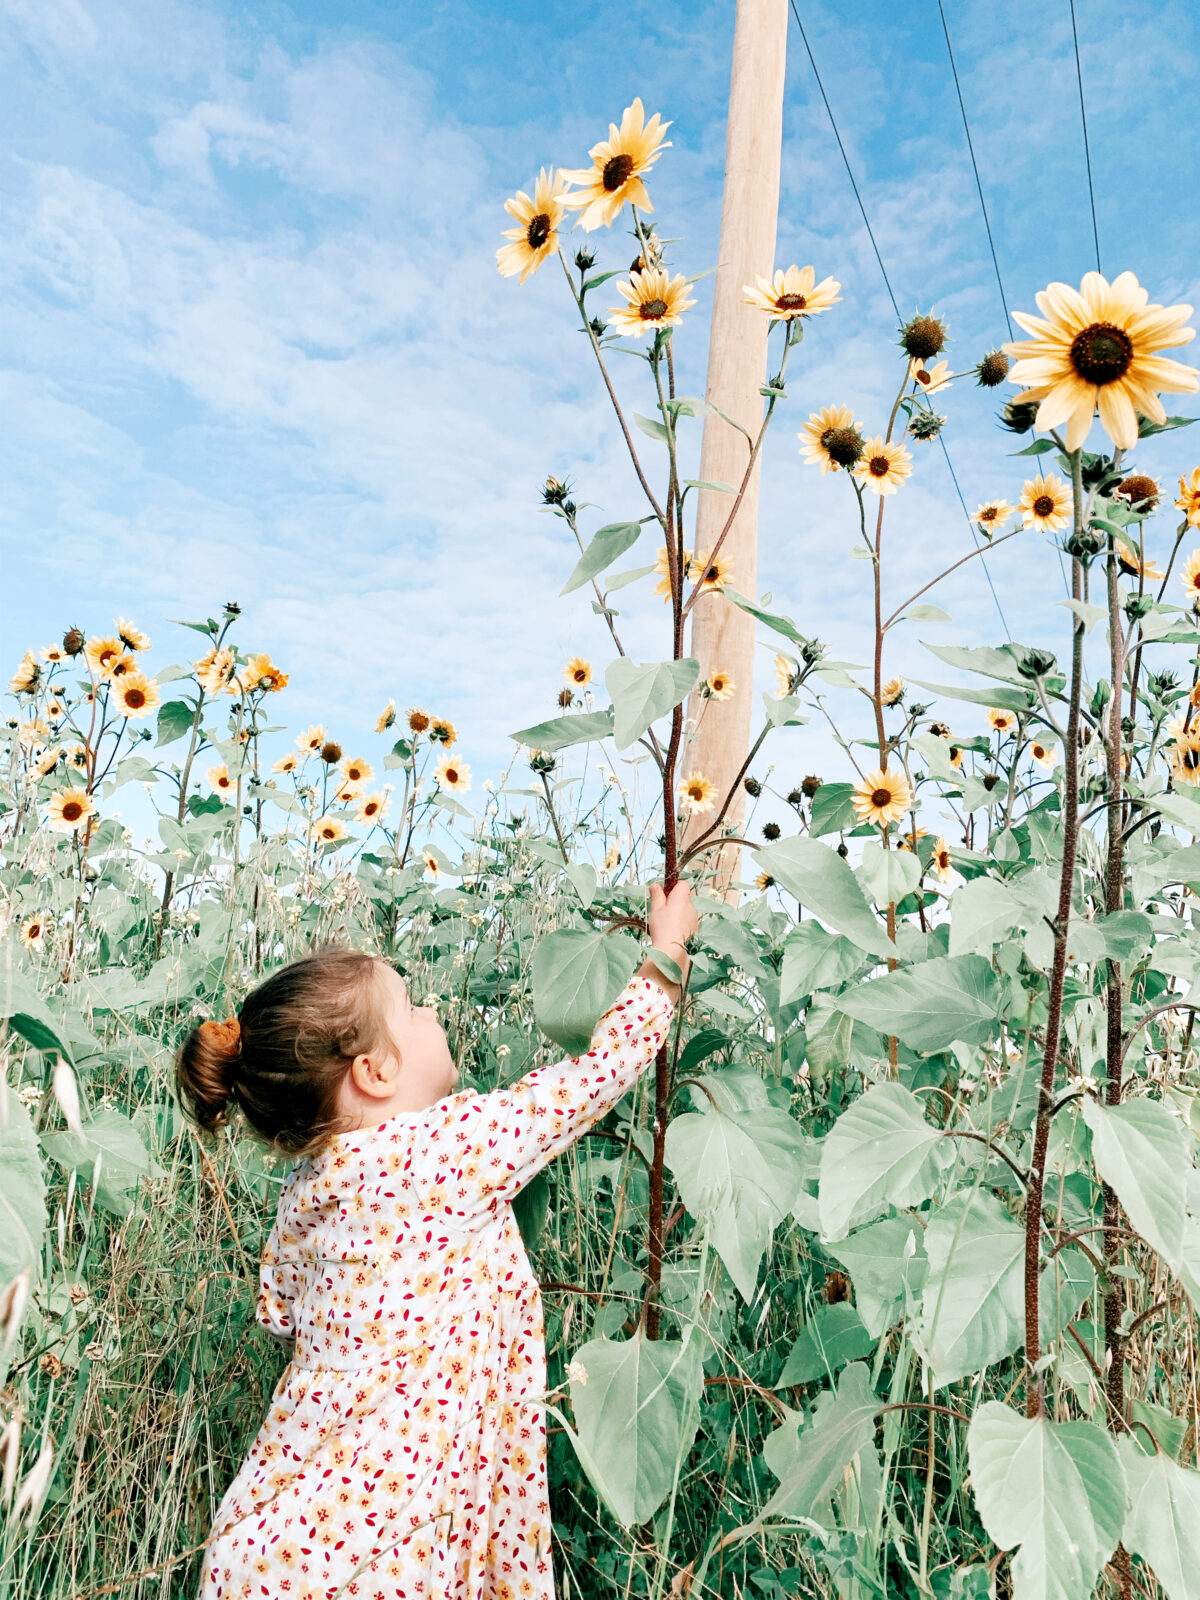 Erin Brouff_Open_Isolation Exploration - Sunflower Patches